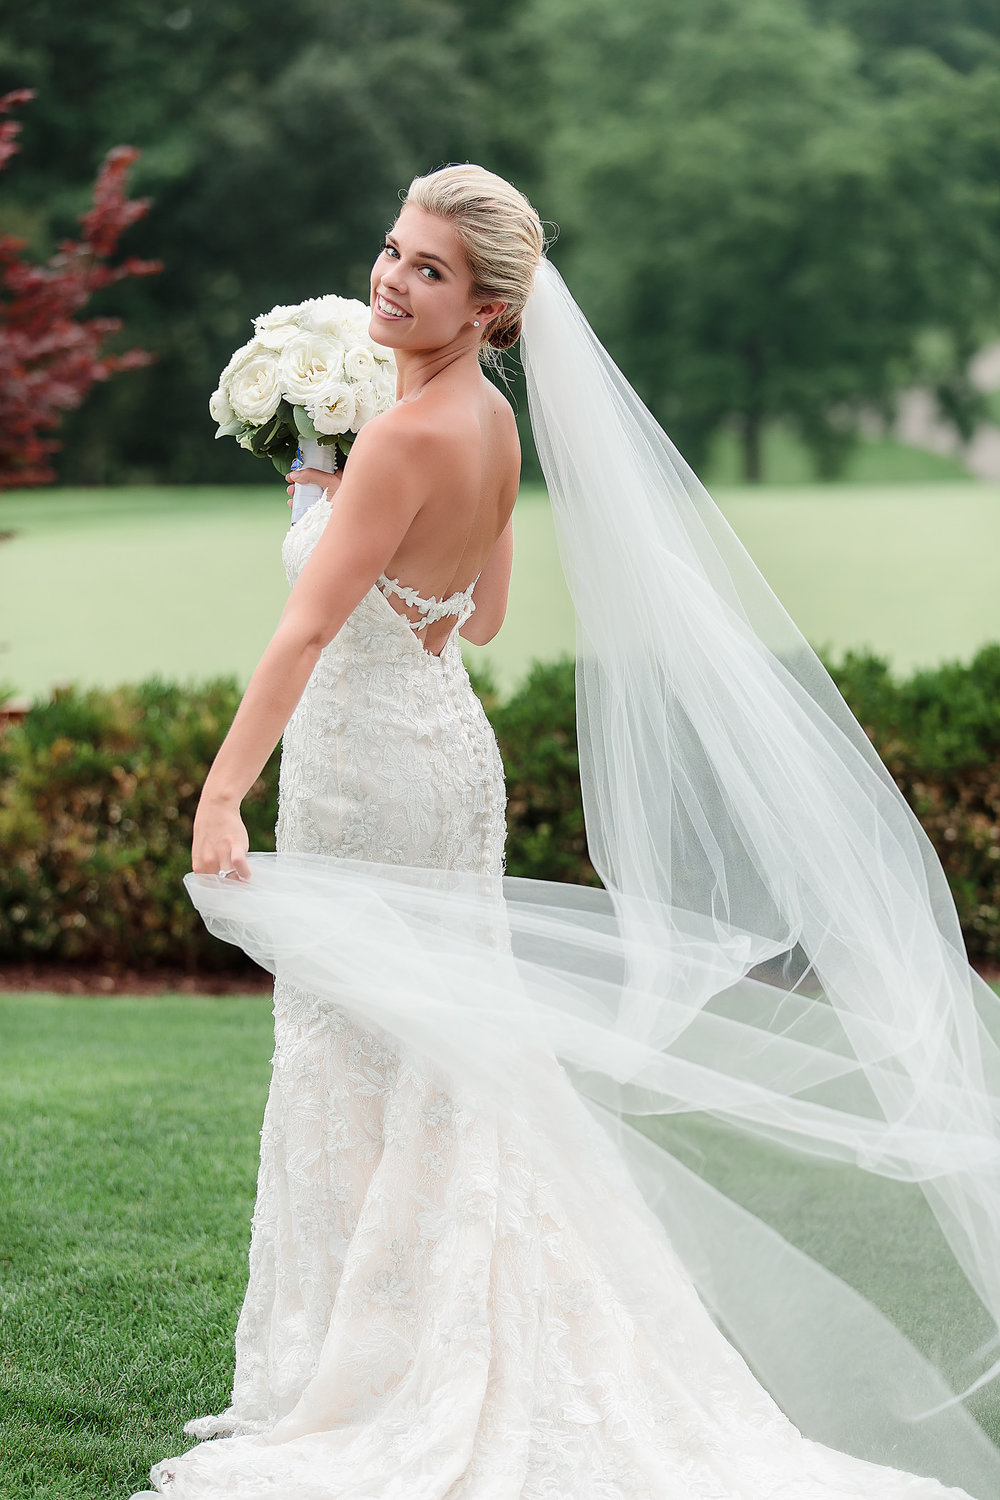 Wedding Photographers Columbus Ohio - Robb McCormick Photography (24 of 29).jpg